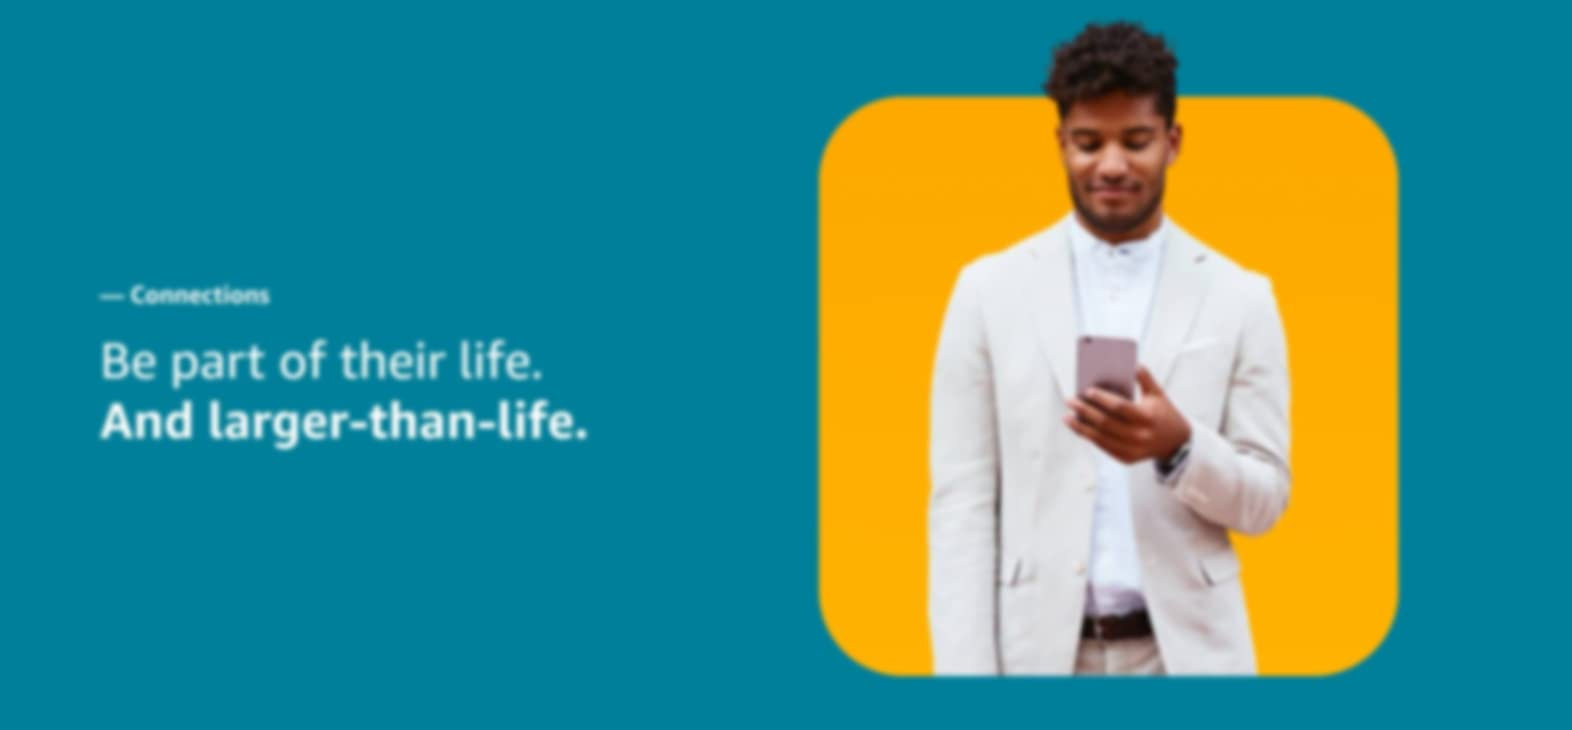 """Person looking at phone smirking on the right and the words """"Connections. be part of their life. And larger-than-life."""" on the left."""